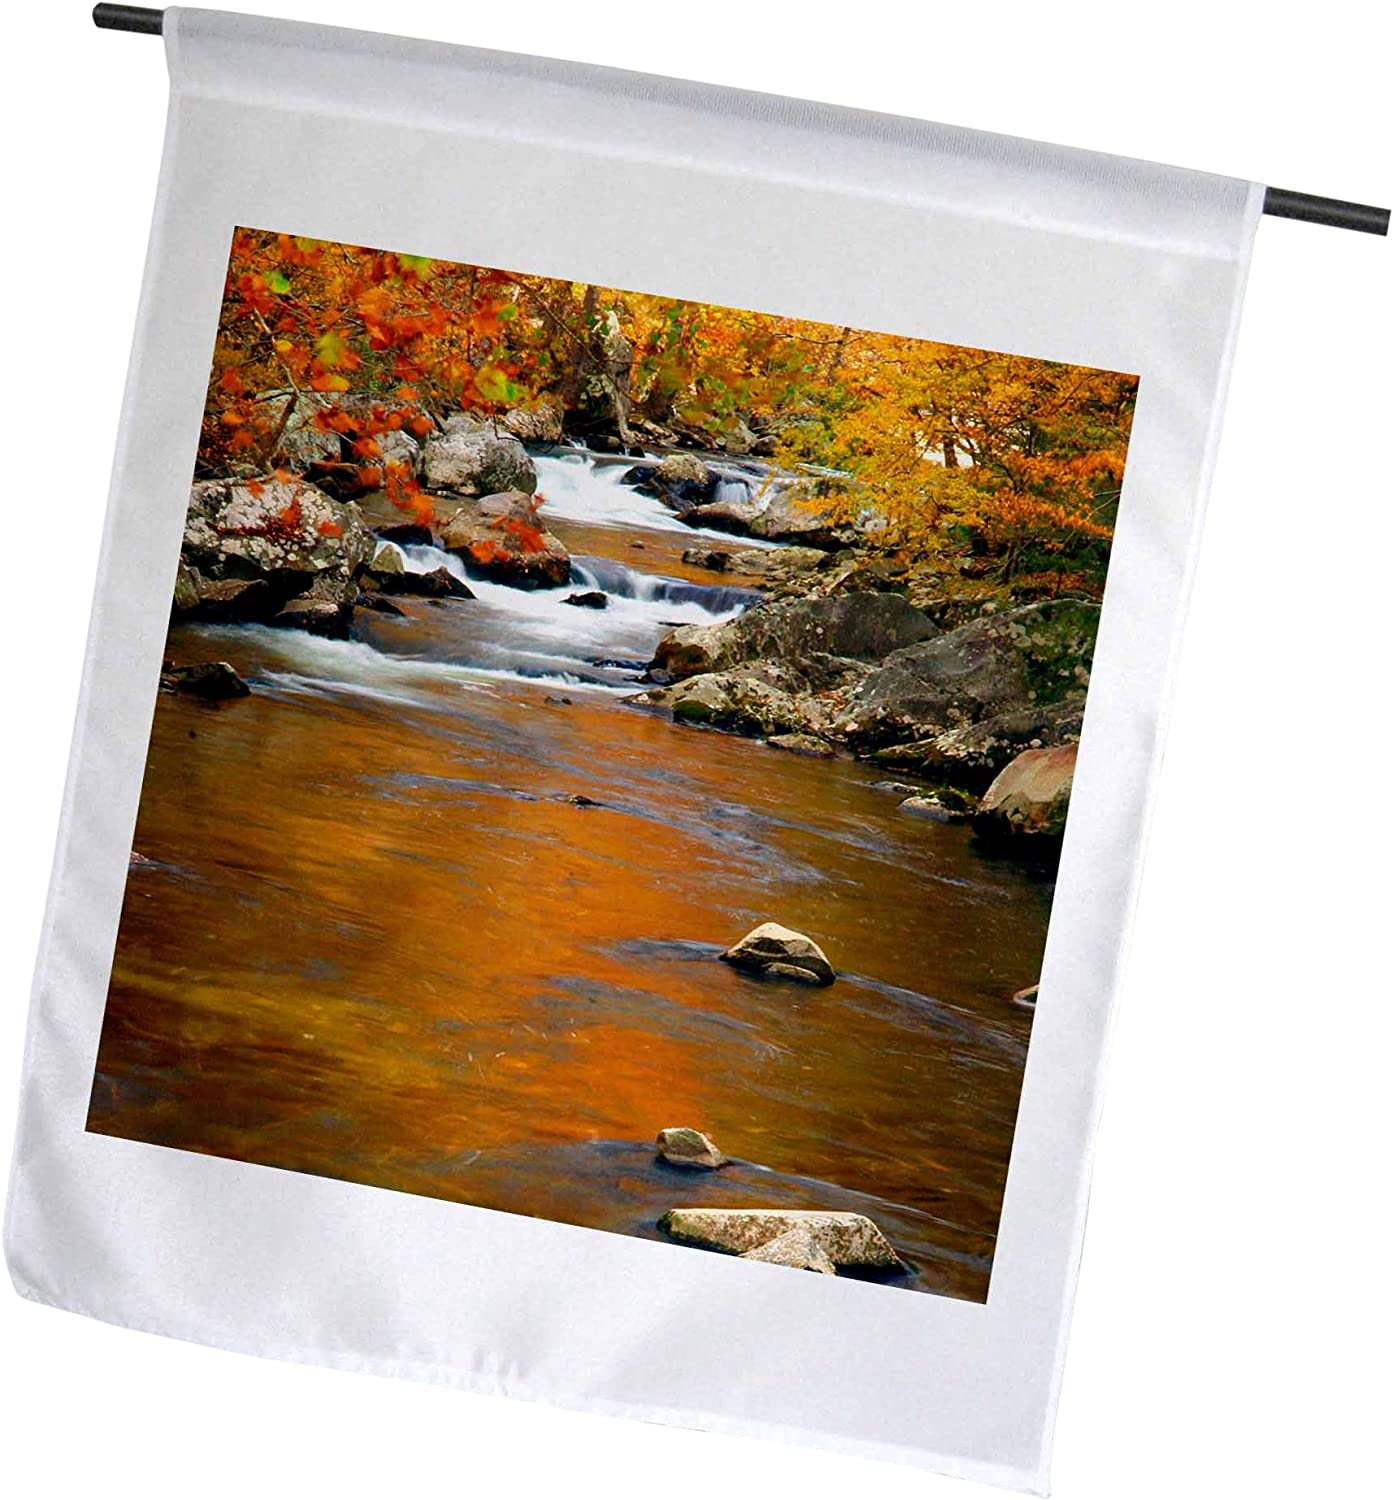 3dRose USA, Tennessee. Creek with Bright Fall Colors. Smoky Mountains. - Garden Flag, 12 by 18